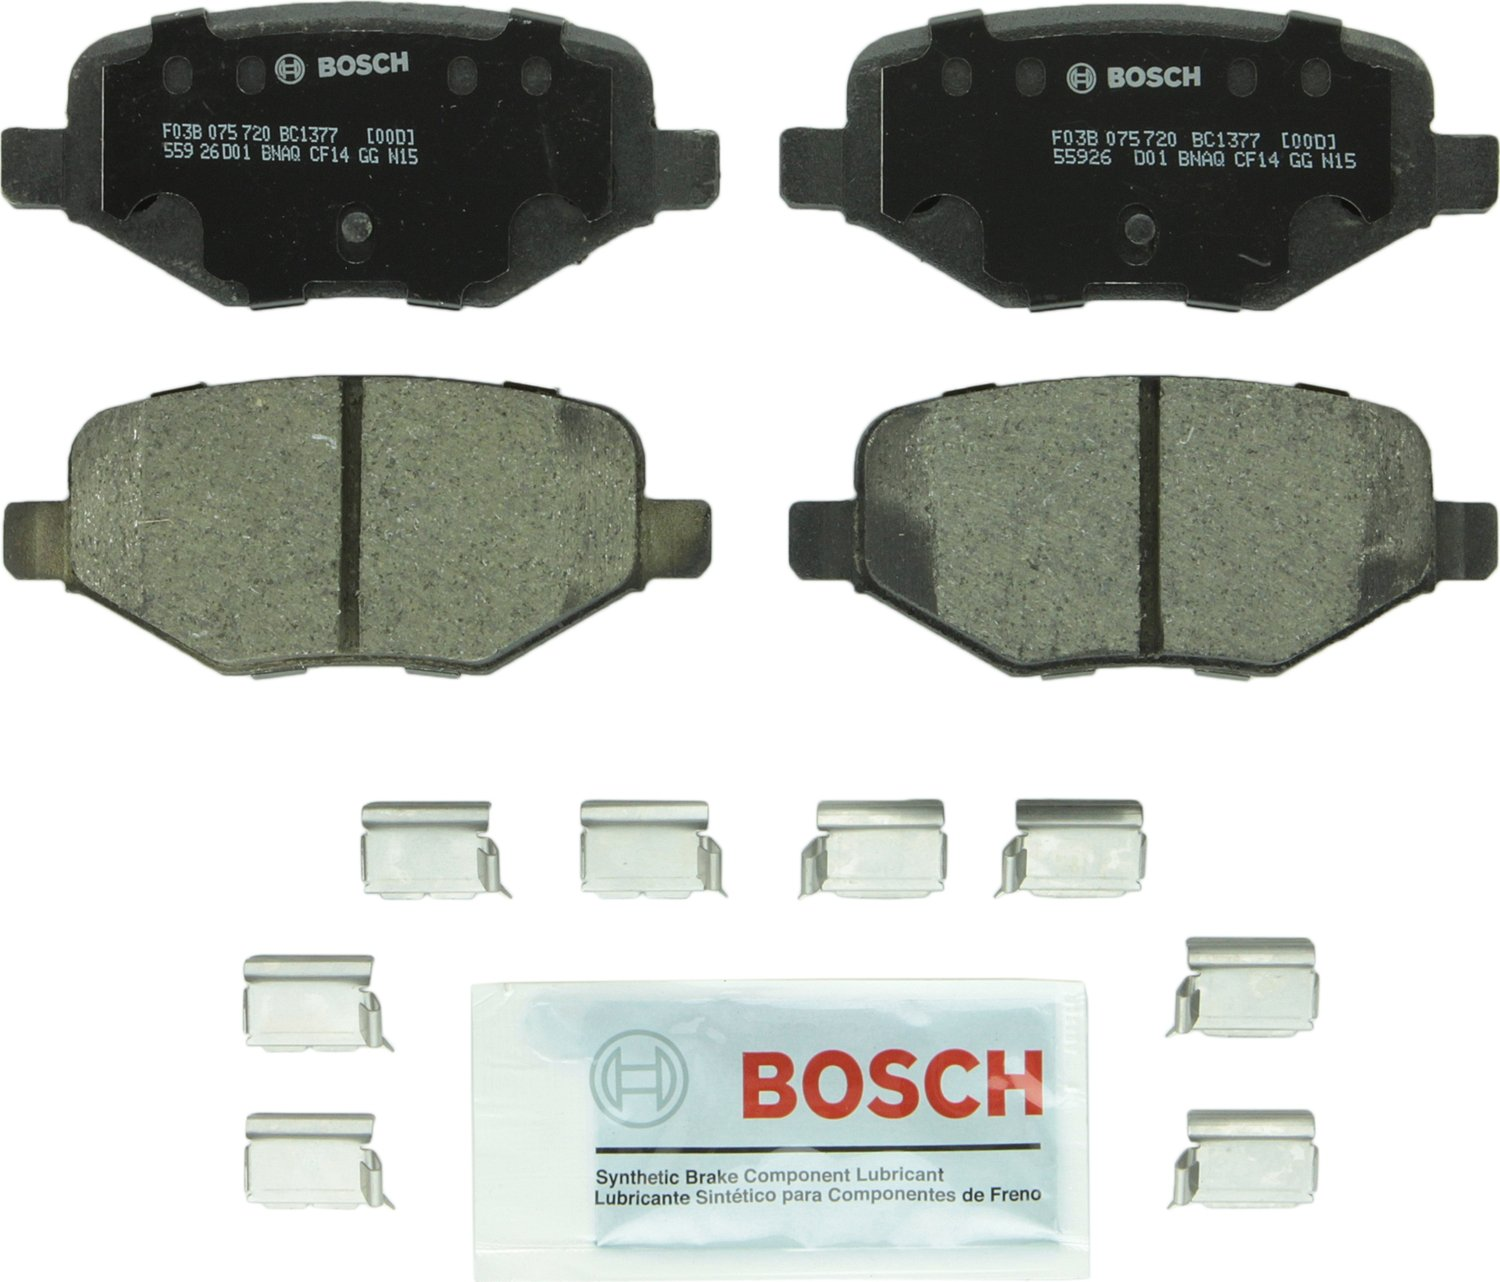 Bosch BC1377 QuietCast Brake Pad Set